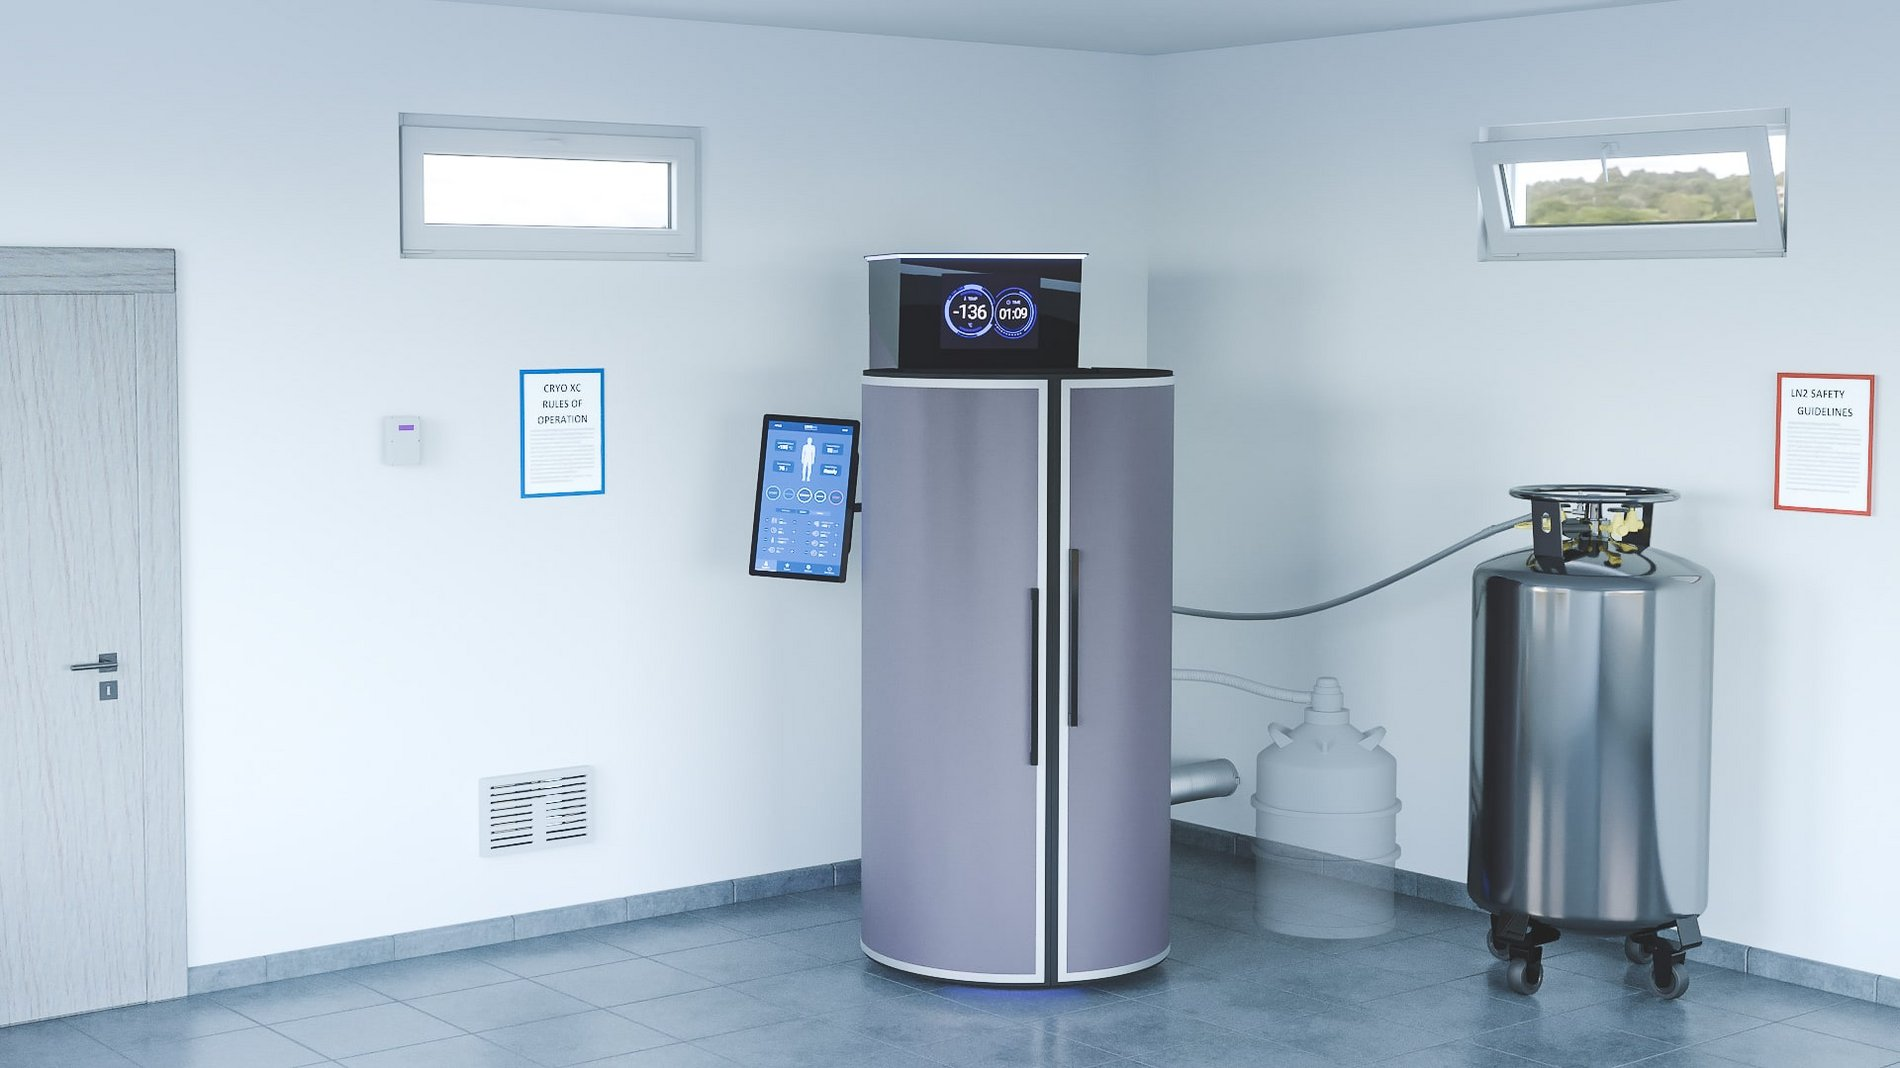 Cryotherapy room setup with pressurized system